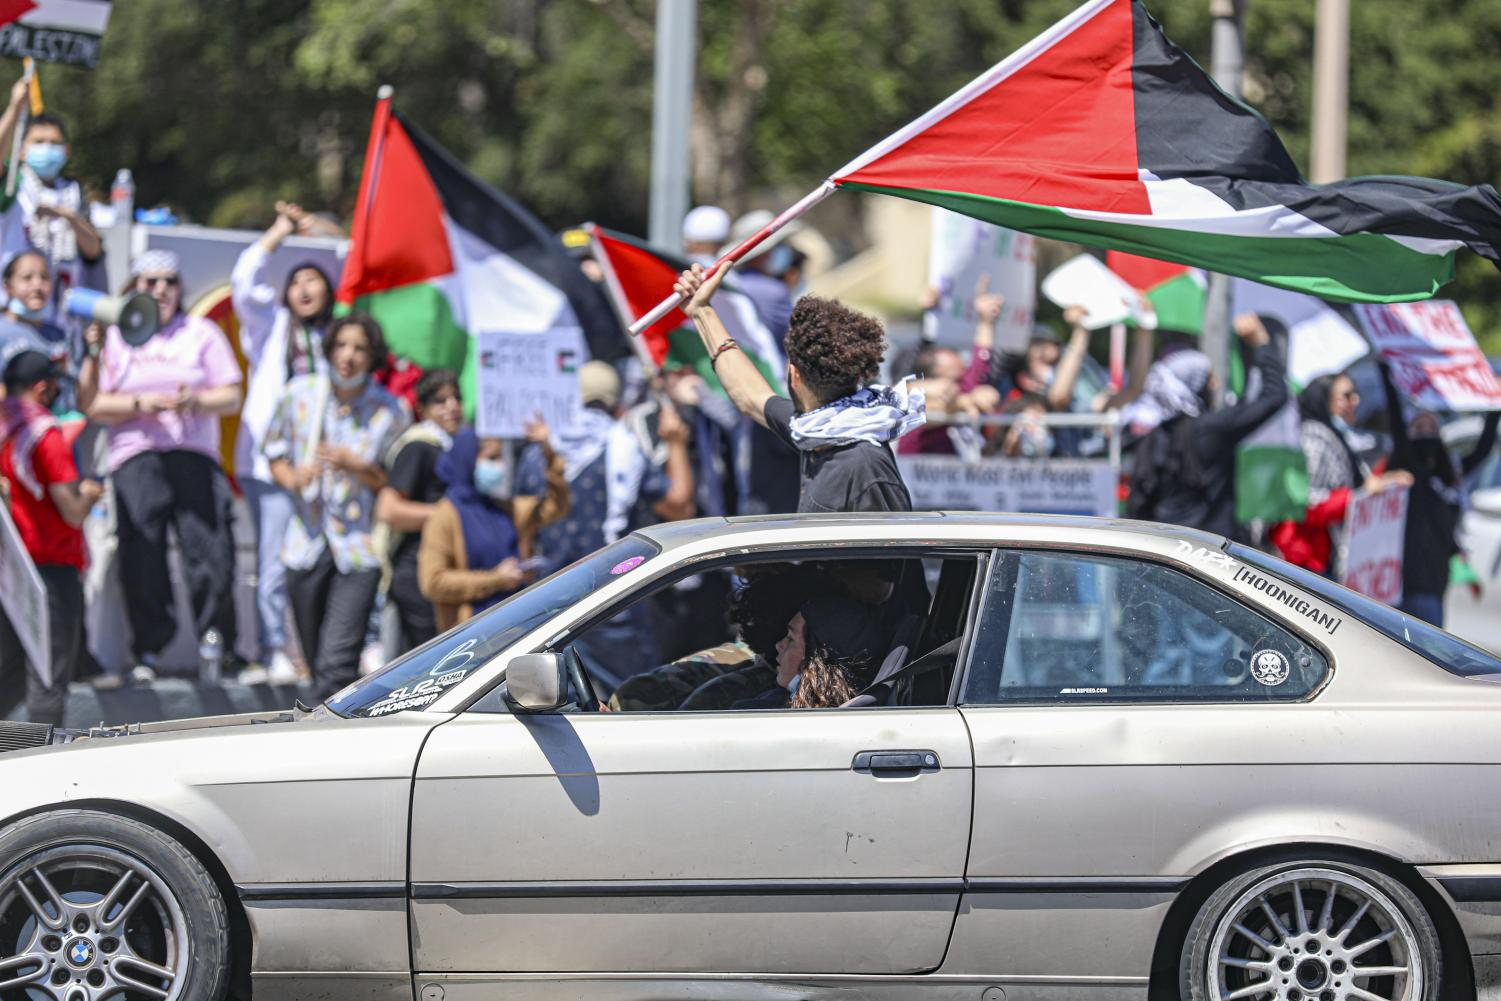 A protester hangs out of a car window waving a Palestine flag during the pro-Palestine protest in Thousand Oaks, CA. on Sunday, May 23, 2021.